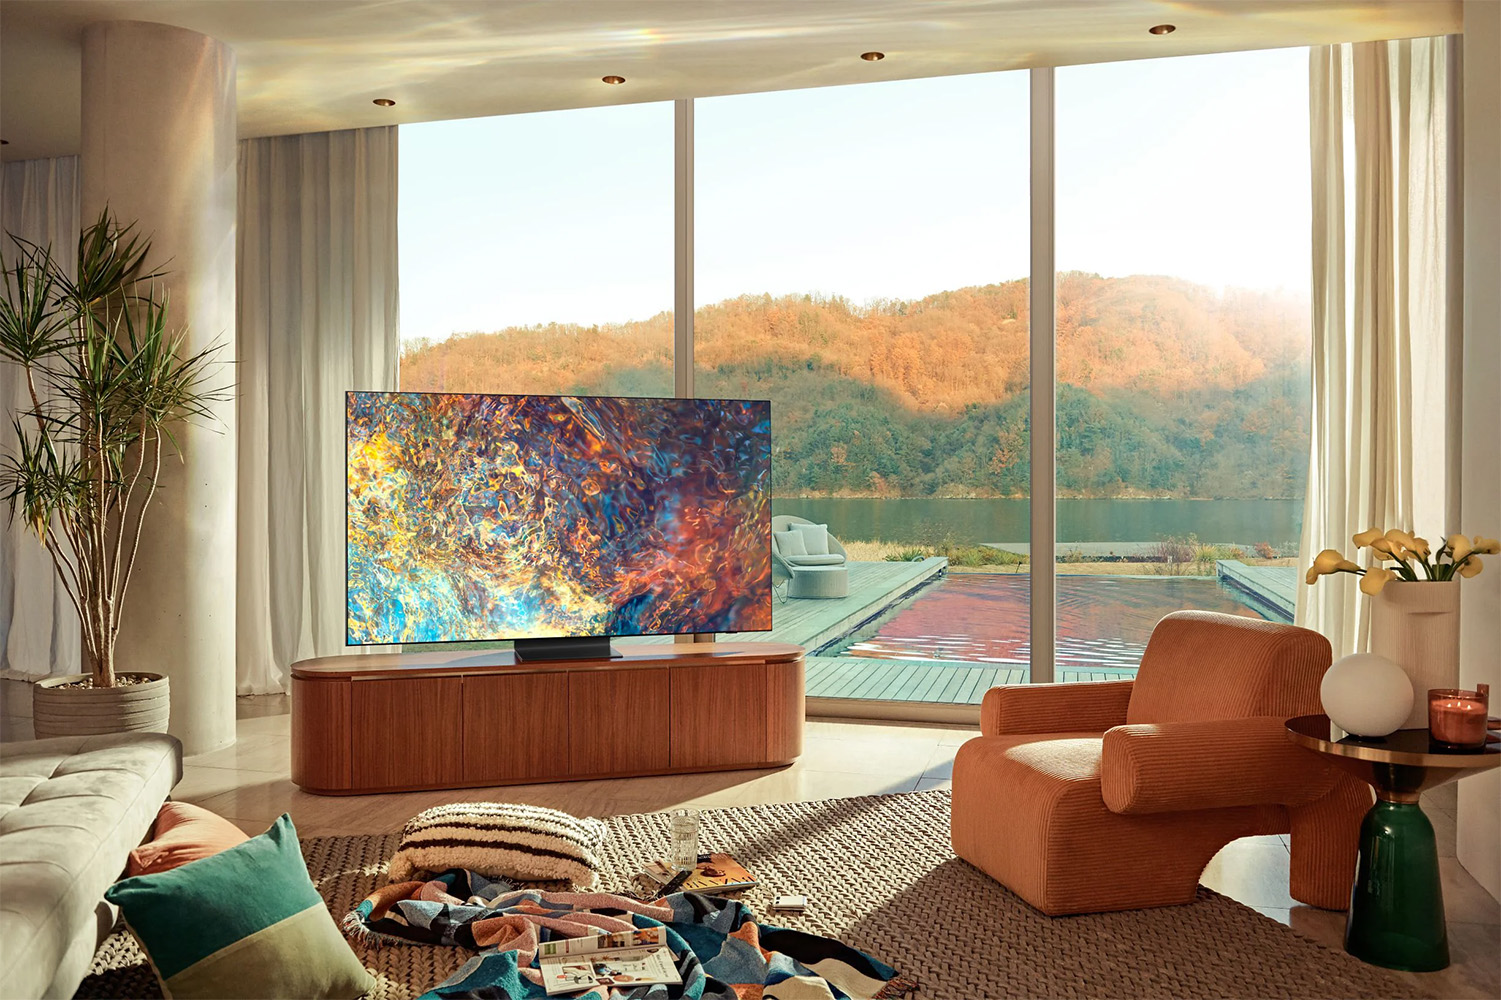 Samsung has announced its 2021 TV lineup, including a 110-inch model